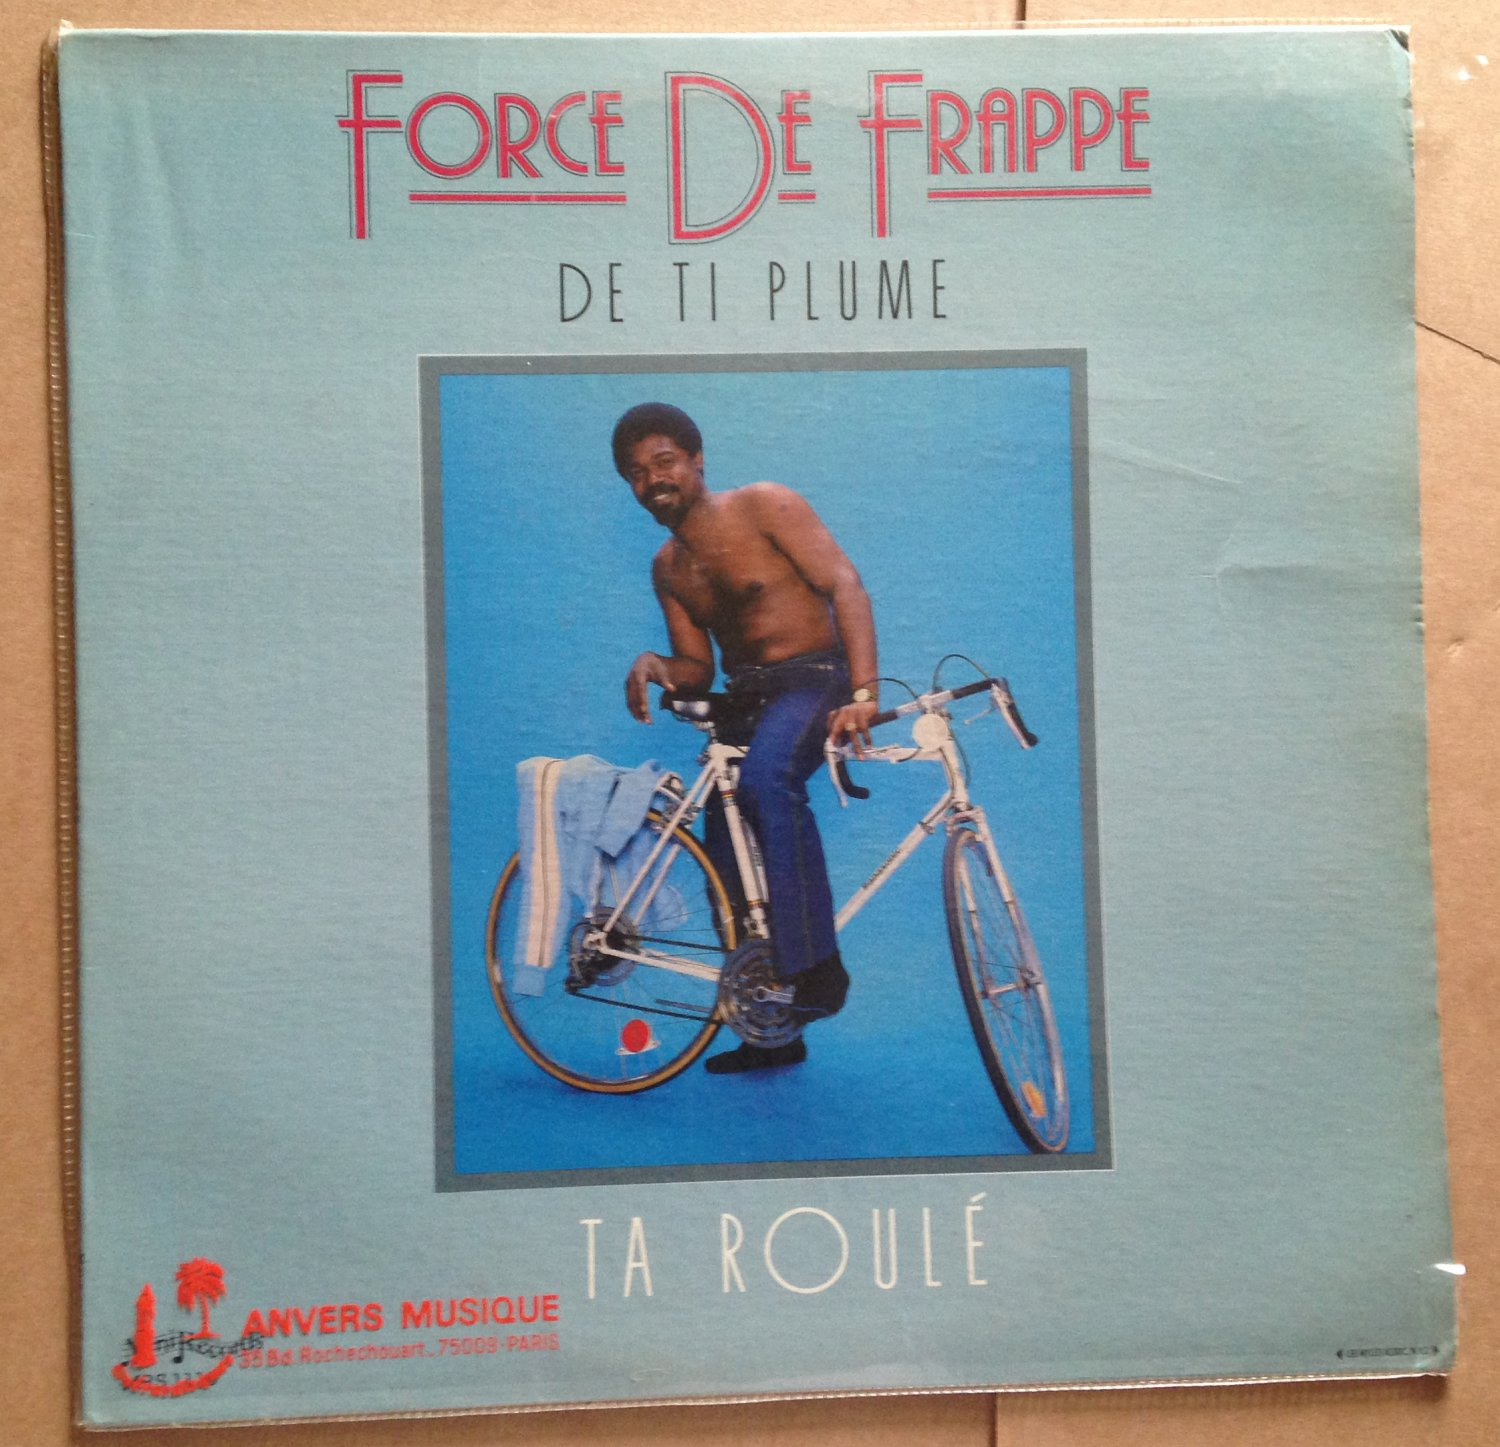 FORCE DE FRAPPE LP de ti plume MINI RECORDS HAITI KOMPAS